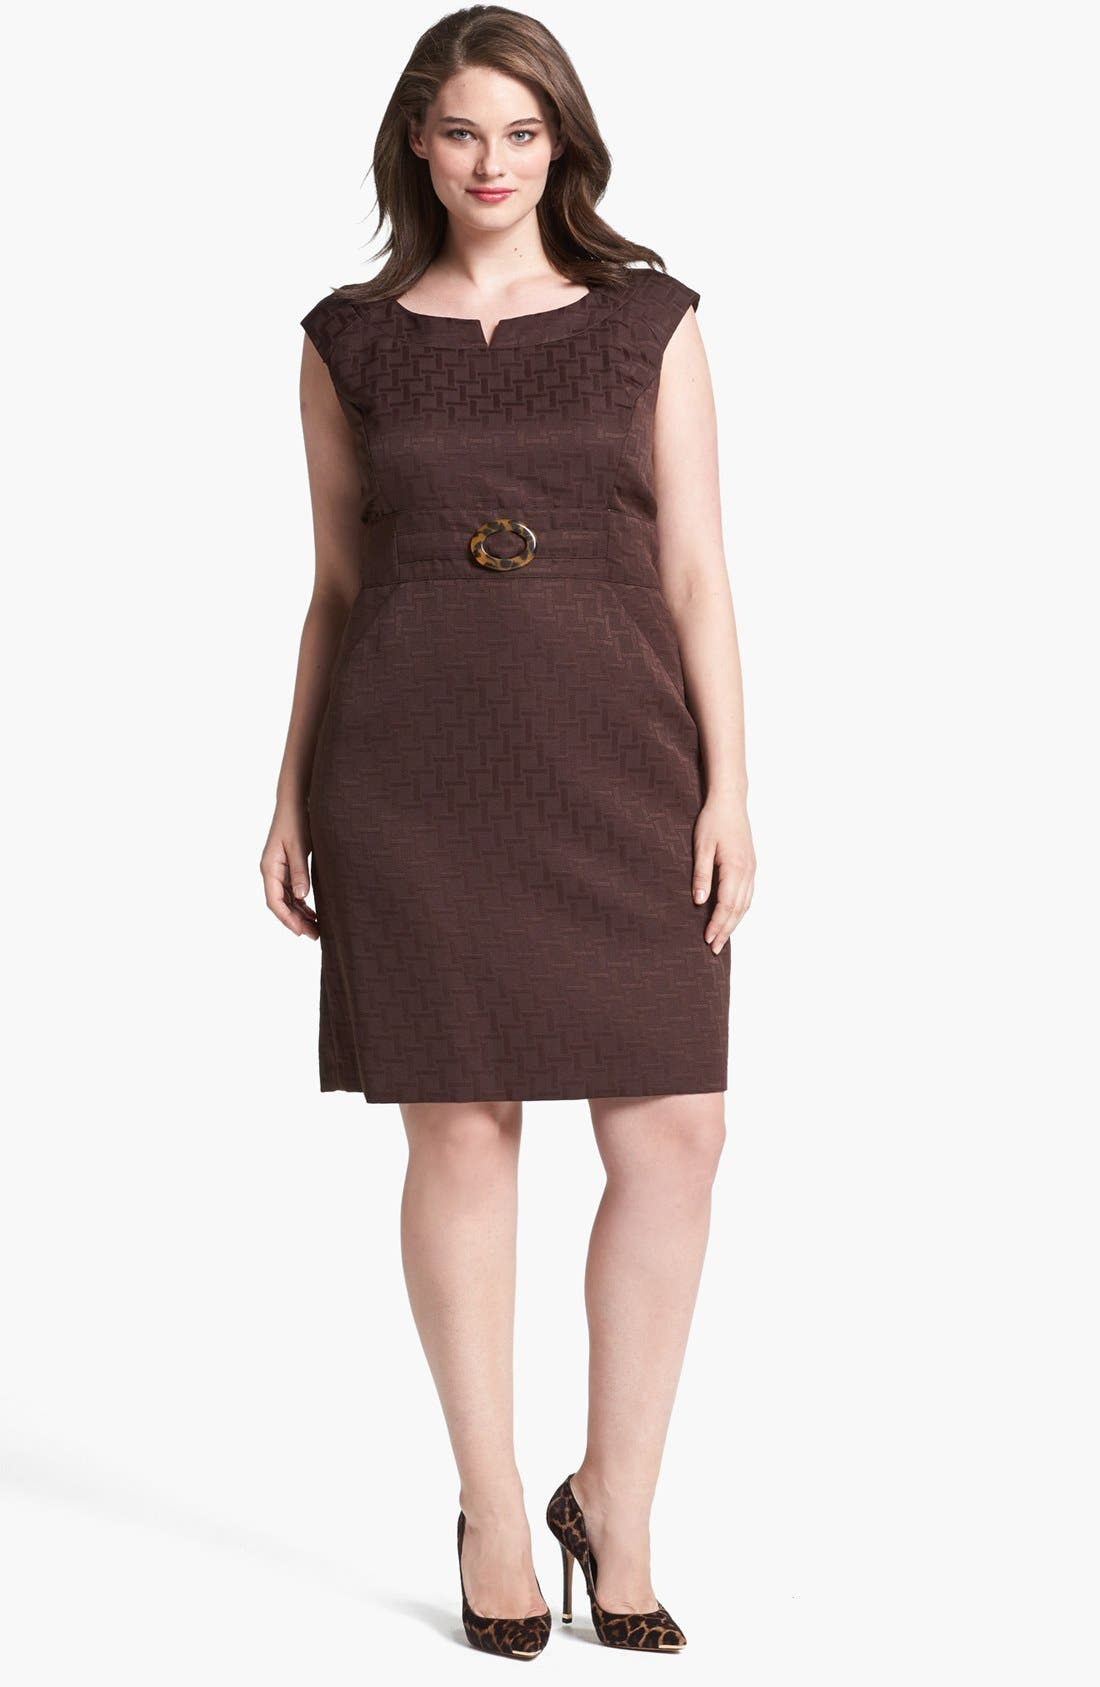 Alternate Image 1 Selected - Tahari Jacquard Sheath Dress (Plus Size)